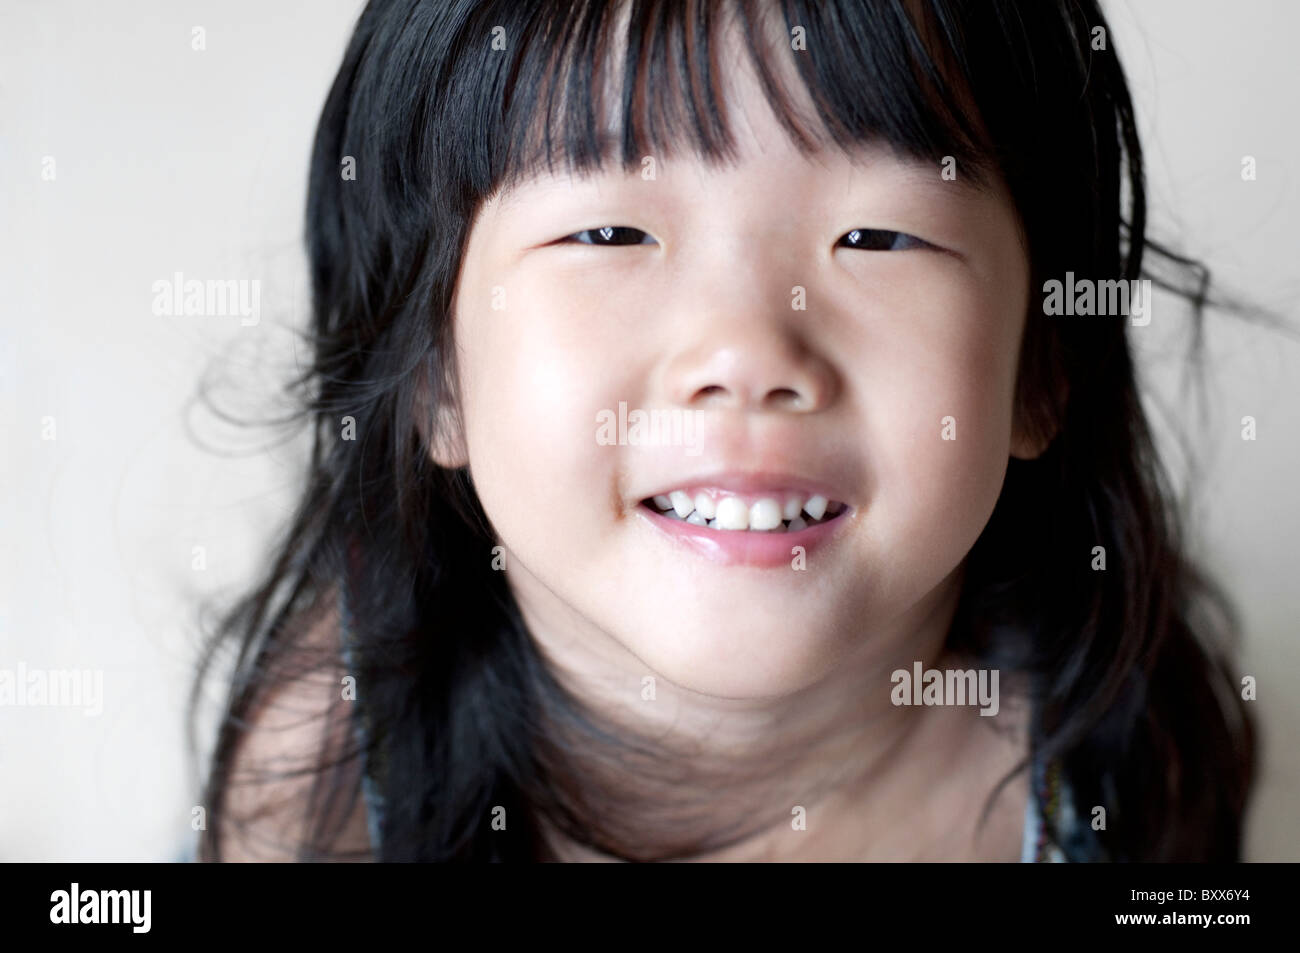 Portrait Of Single Eyelid Little Asian Girl Smiling Looking Up